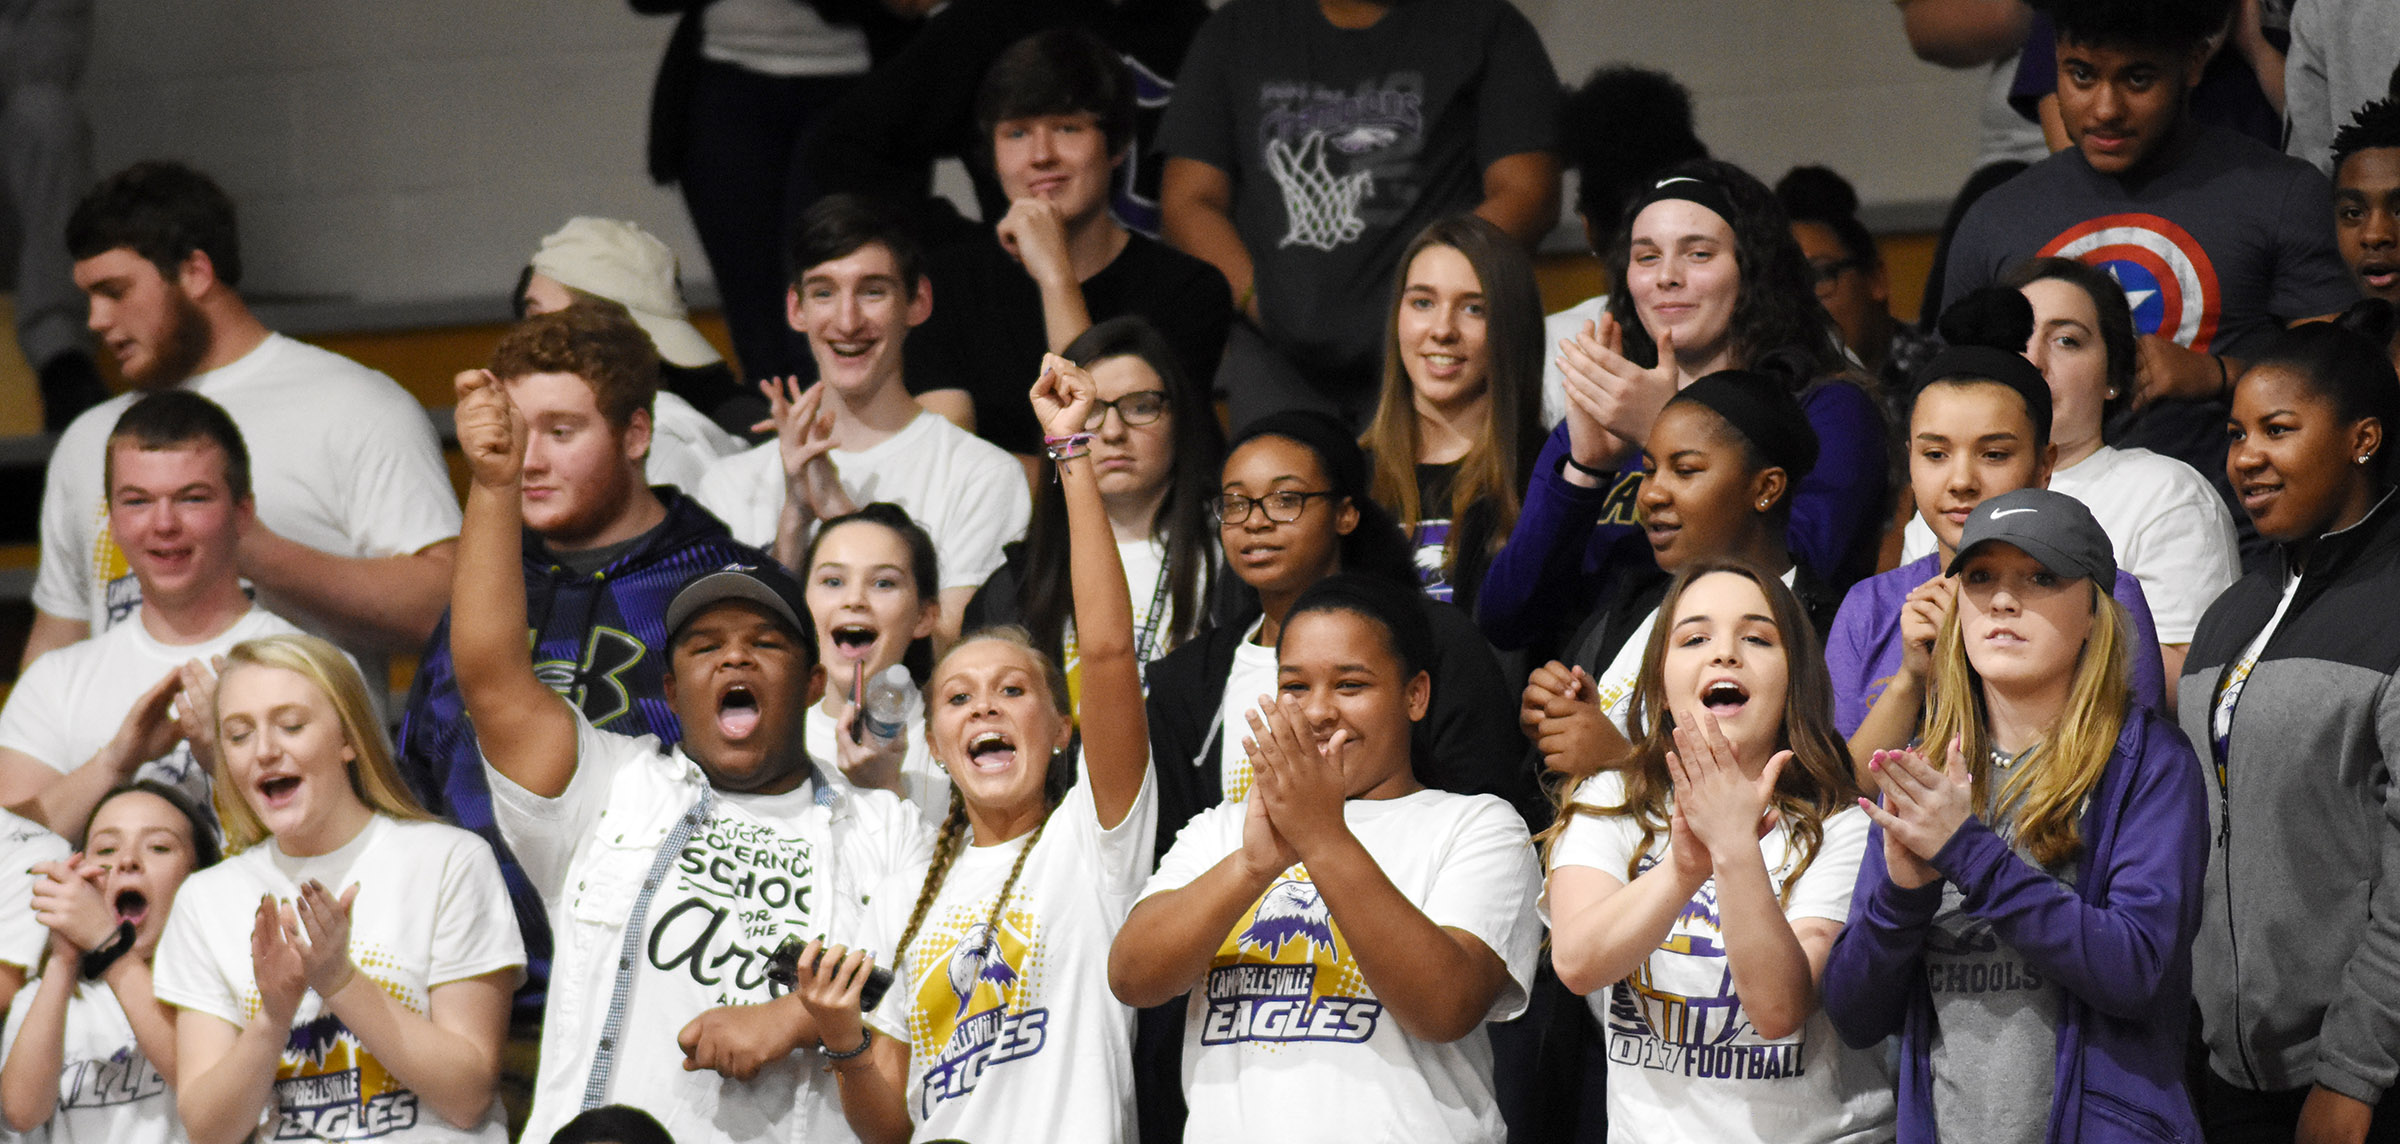 CHS students cheer.